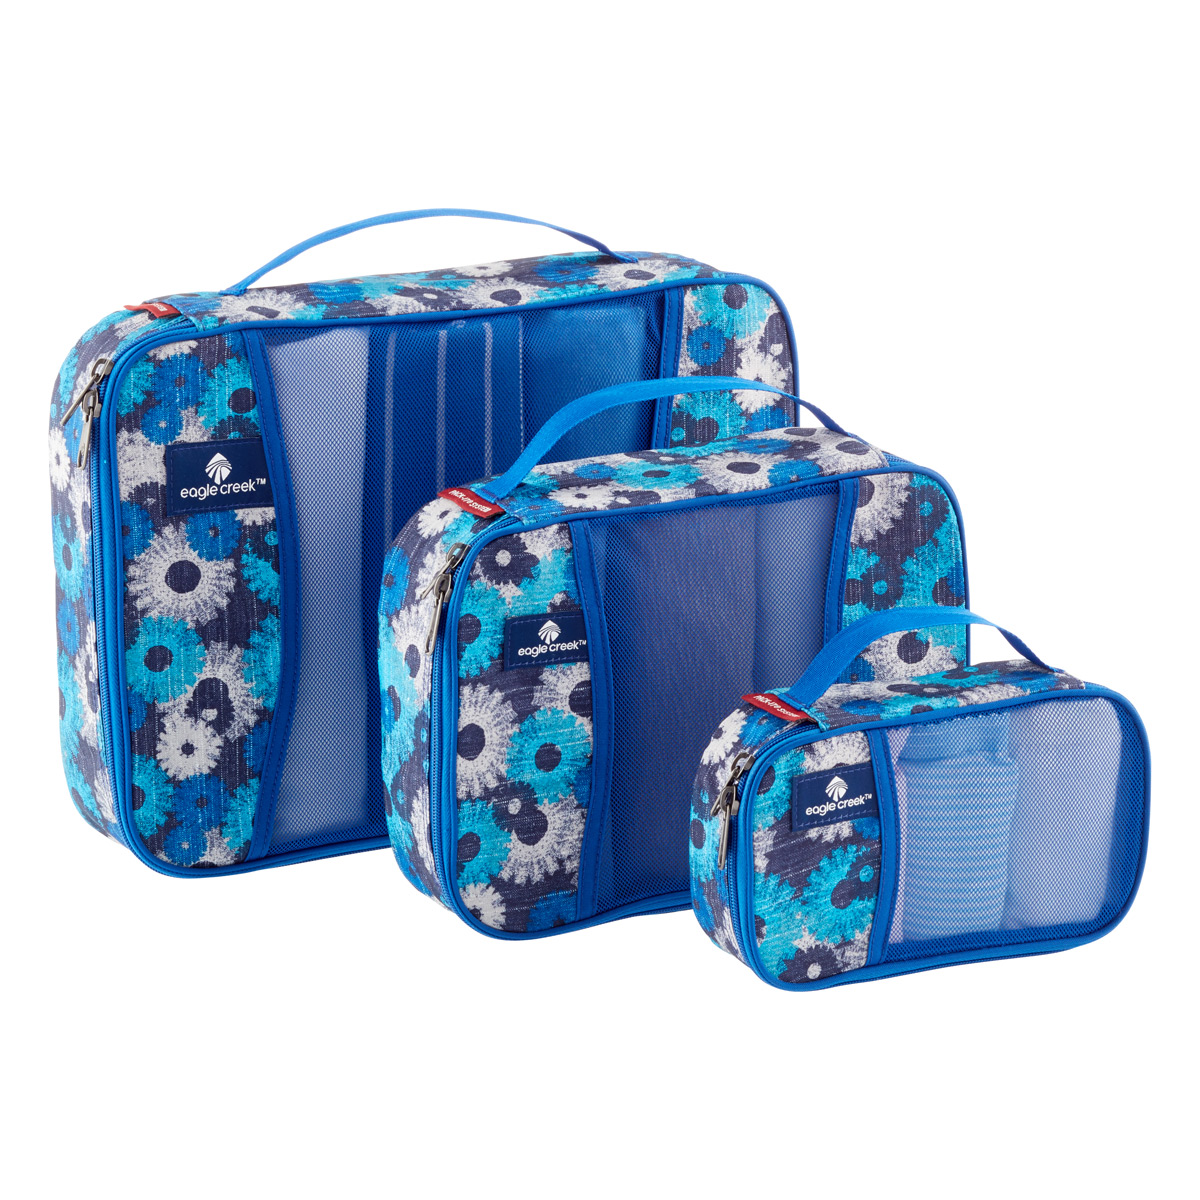 Pack-It^ Cube